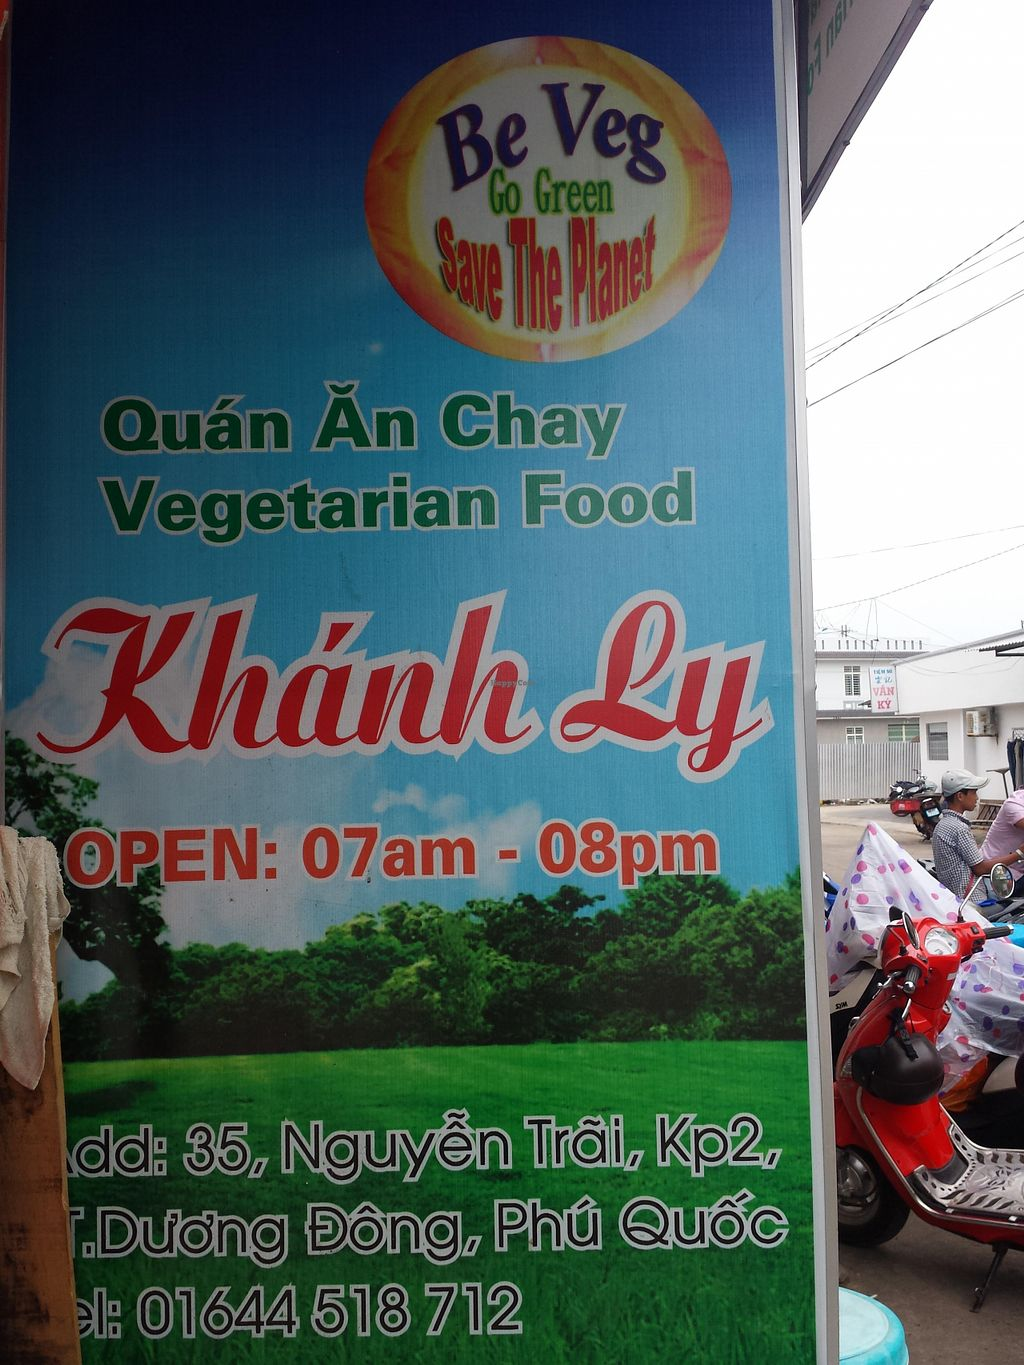 "Photo of Khanh Ly Vegetarian Food  by <a href=""/members/profile/Happymouse"">Happymouse</a> <br/>banner at the end of the street with opening hours <br/> August 1, 2015  - <a href='/contact/abuse/image/30846/111913'>Report</a>"